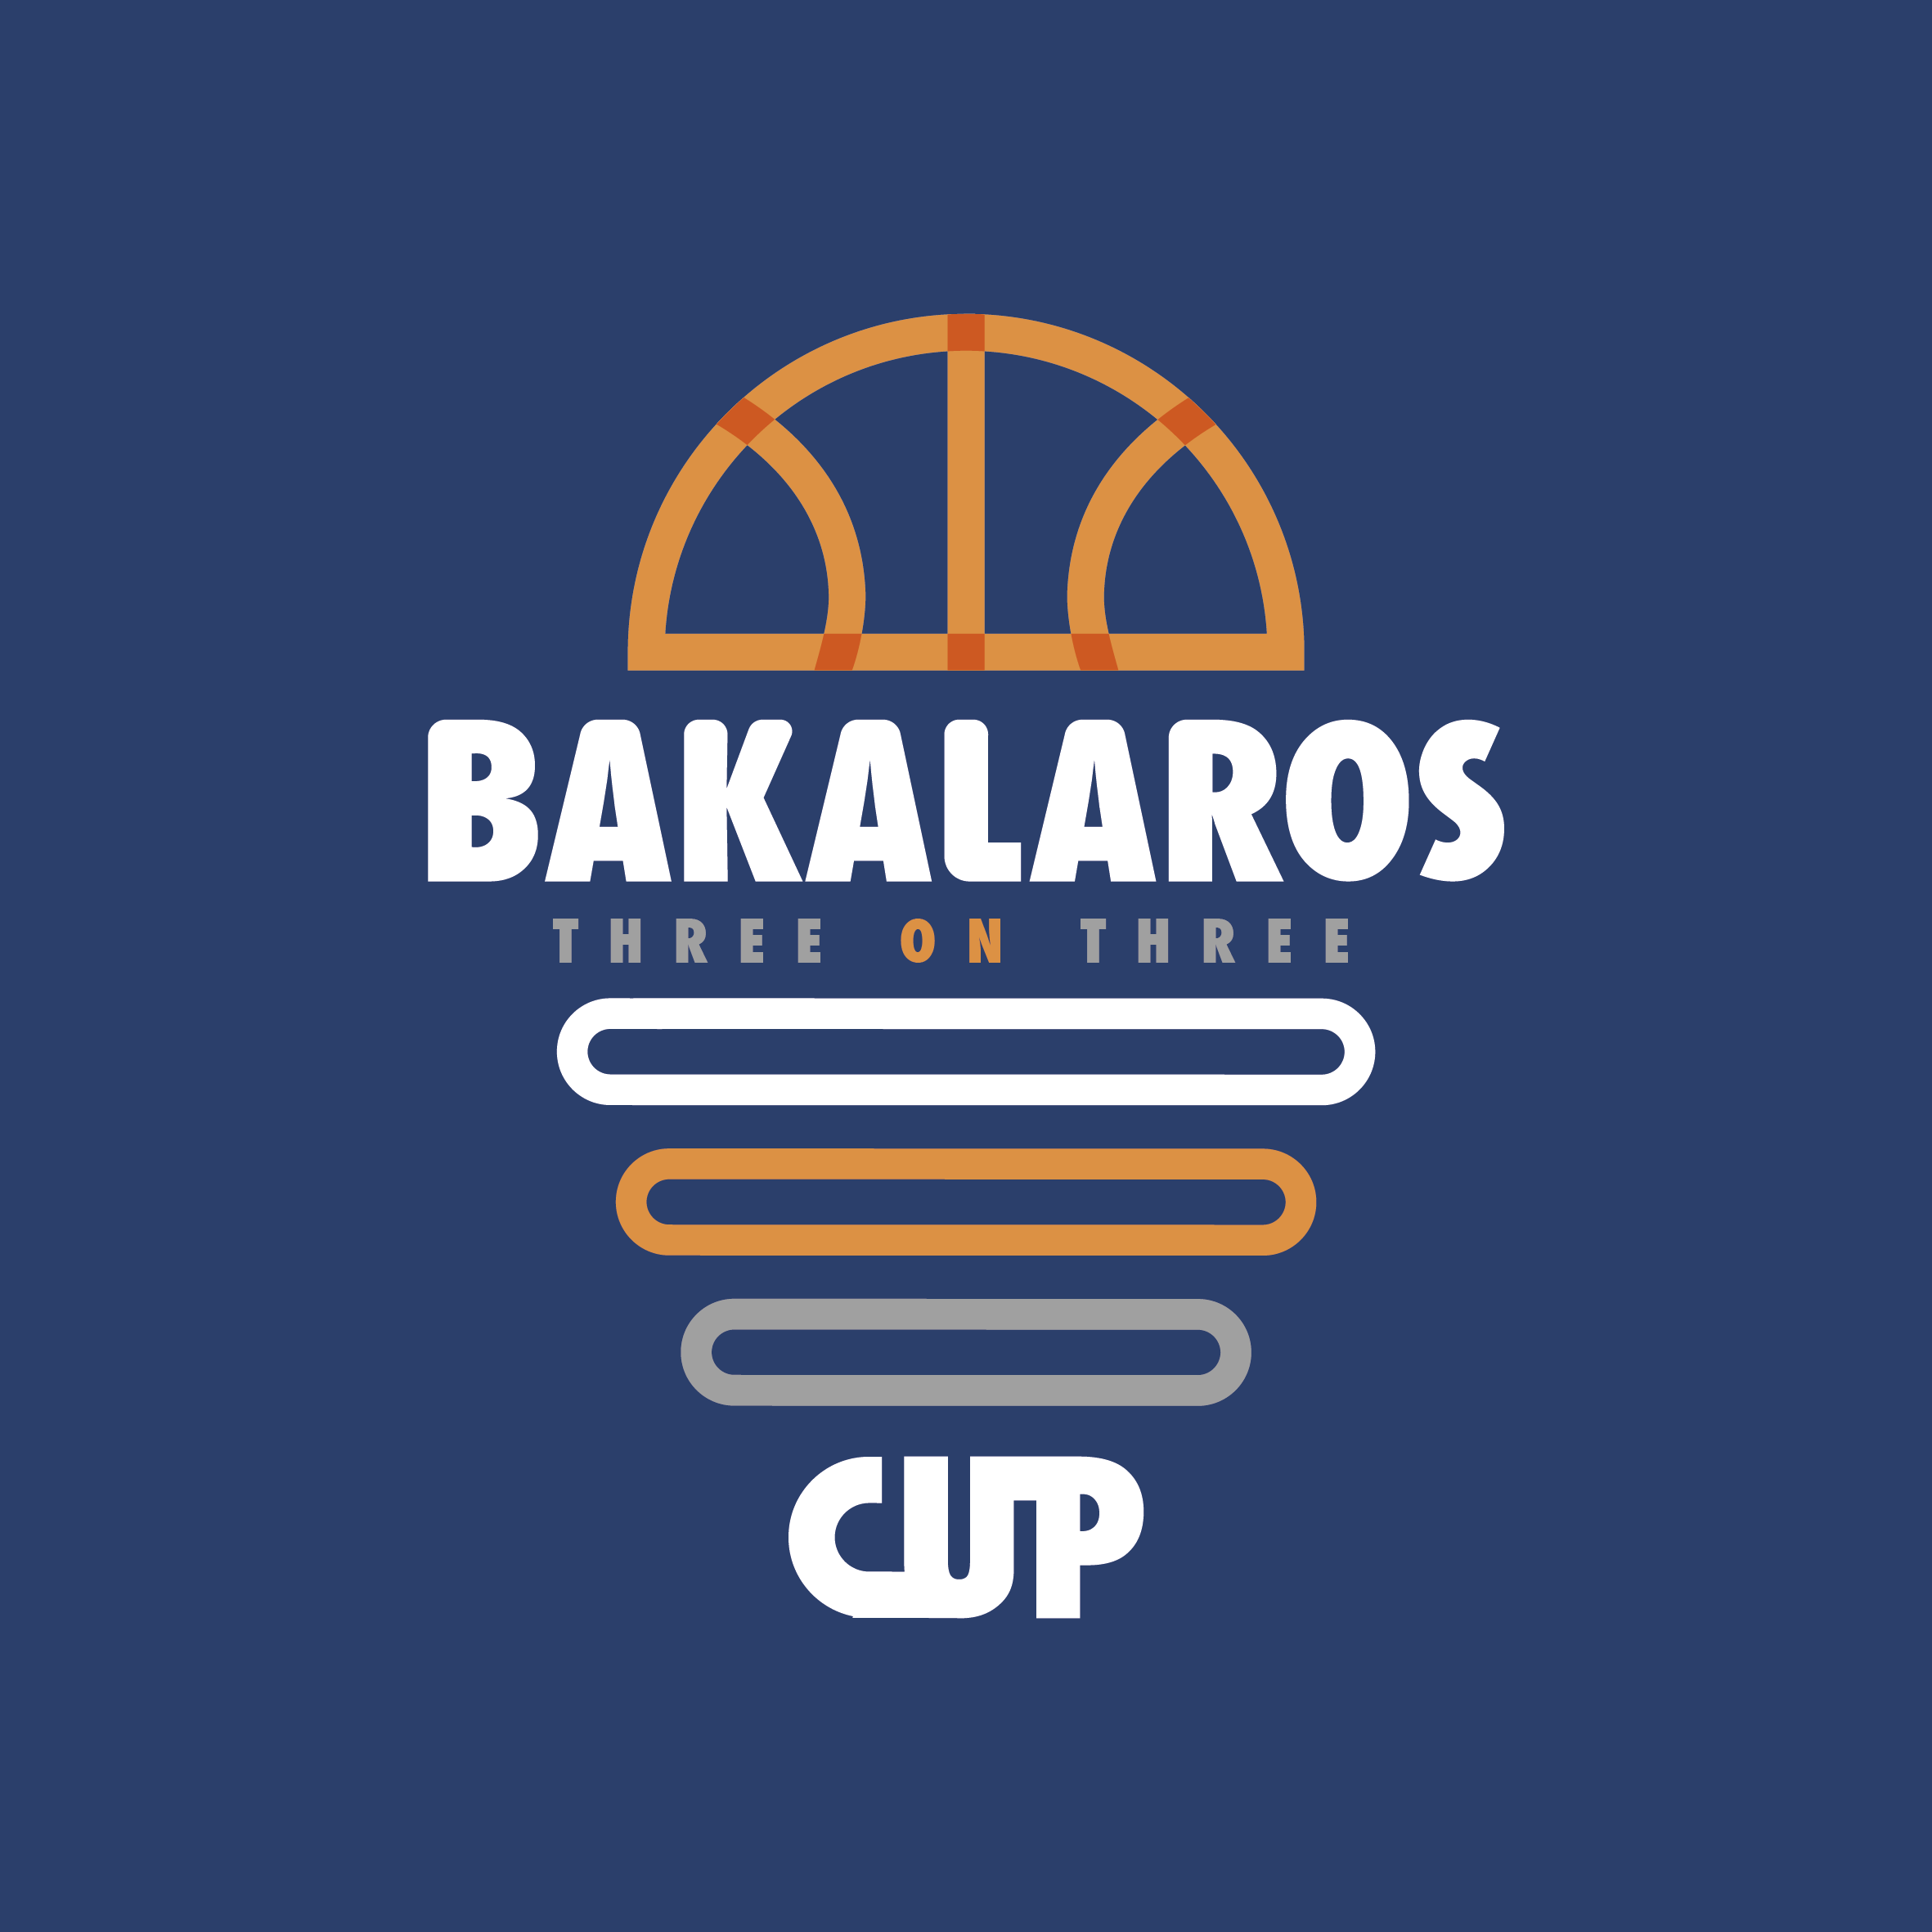 Bakalaros 3on3 cup LOGO 2017 04